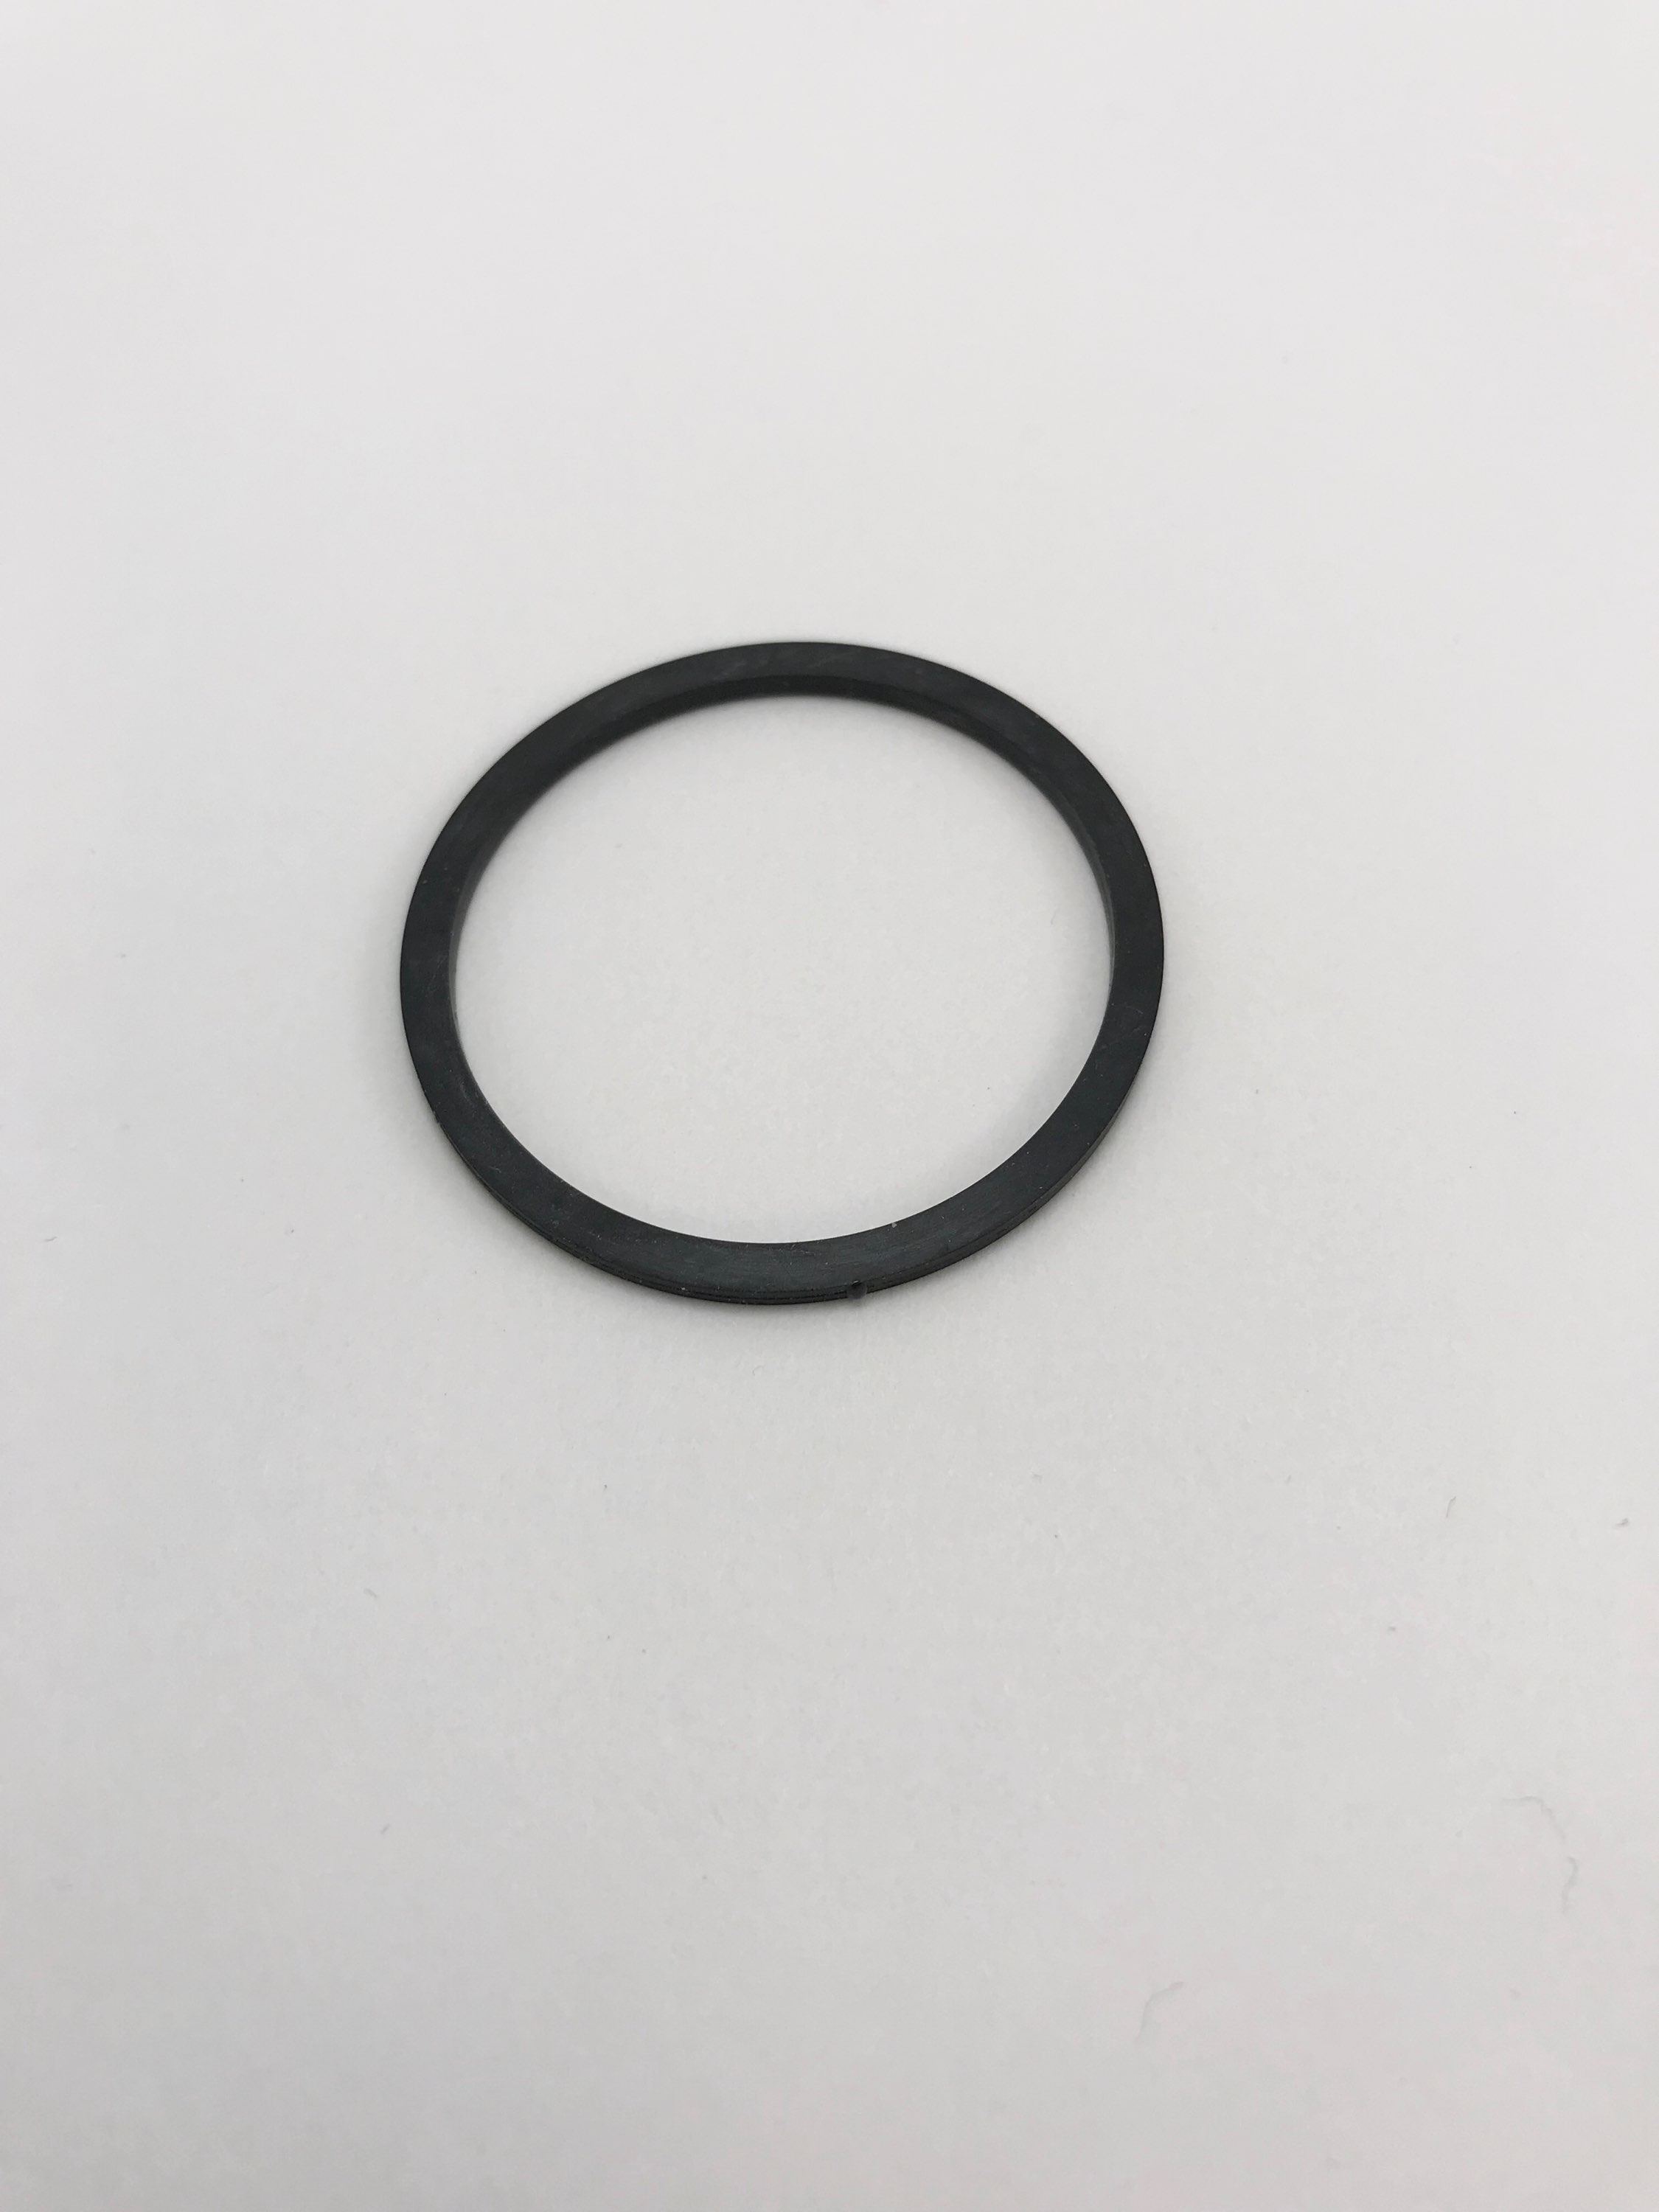 200489 TUTCO SUREHEAT Hot Air Heater Serpentine II Gasket for 042339 or 057088